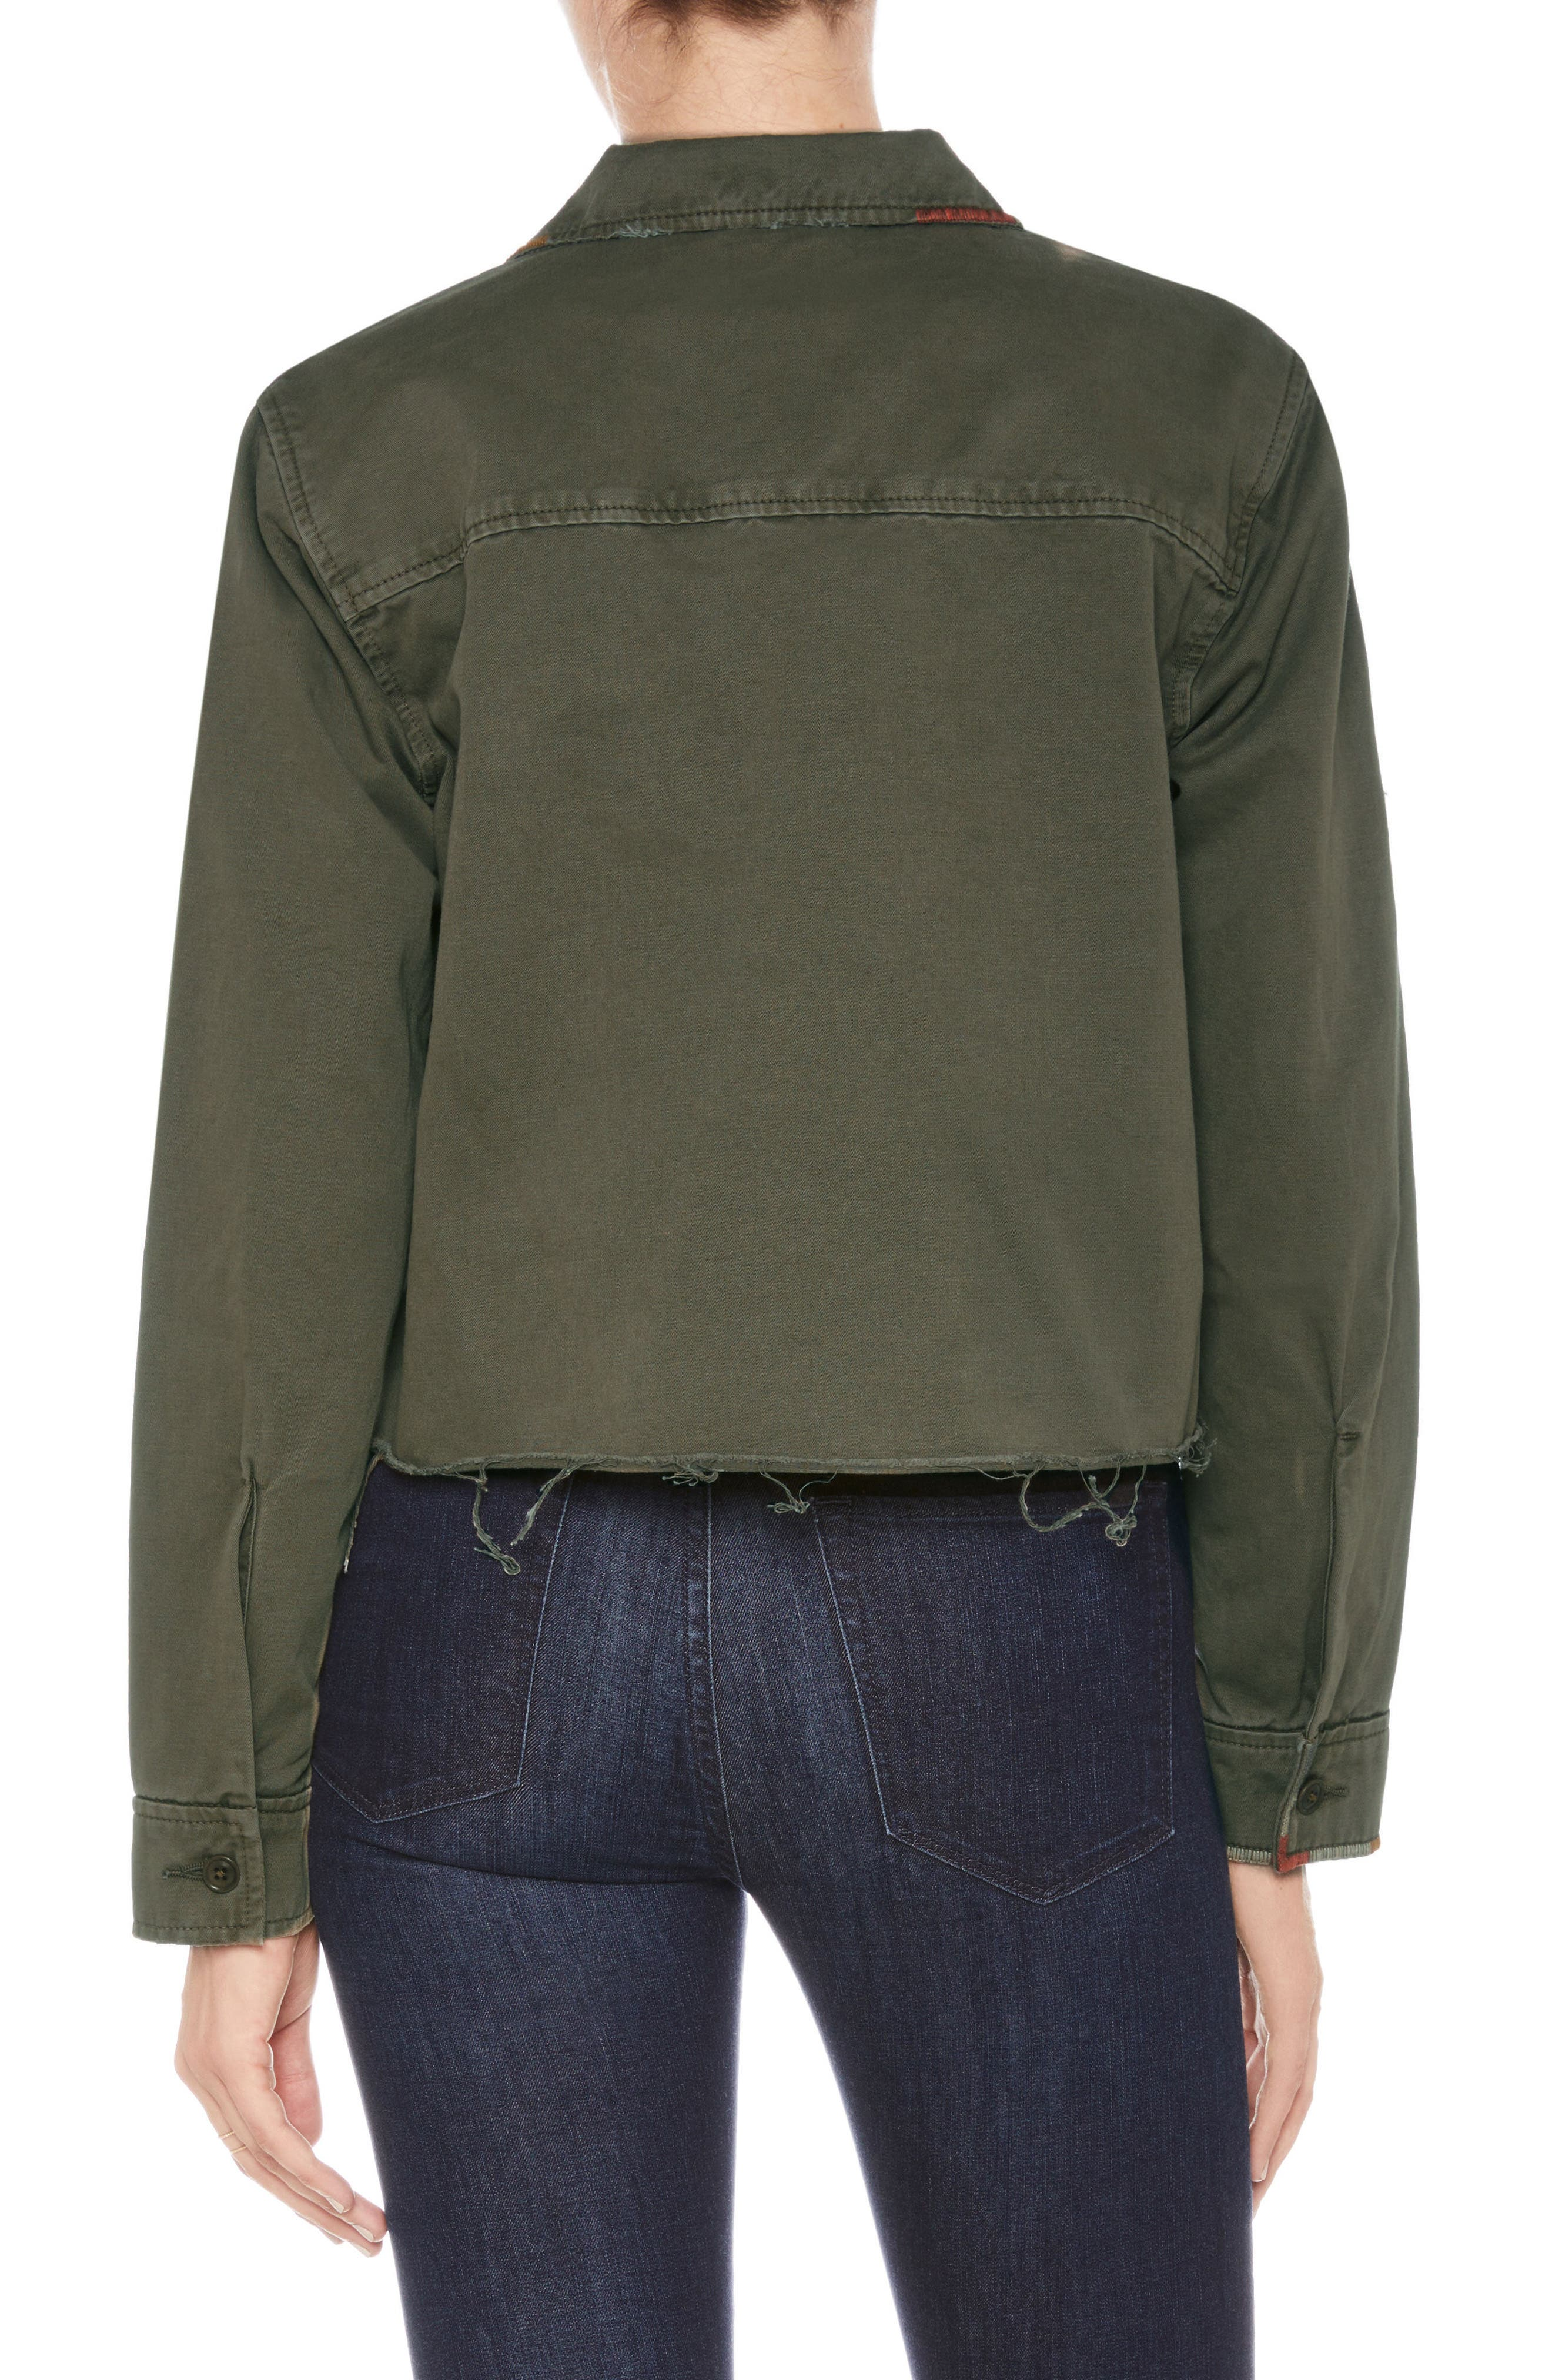 Marie Military Shirt Jacket,                             Alternate thumbnail 2, color,                             Earth Army